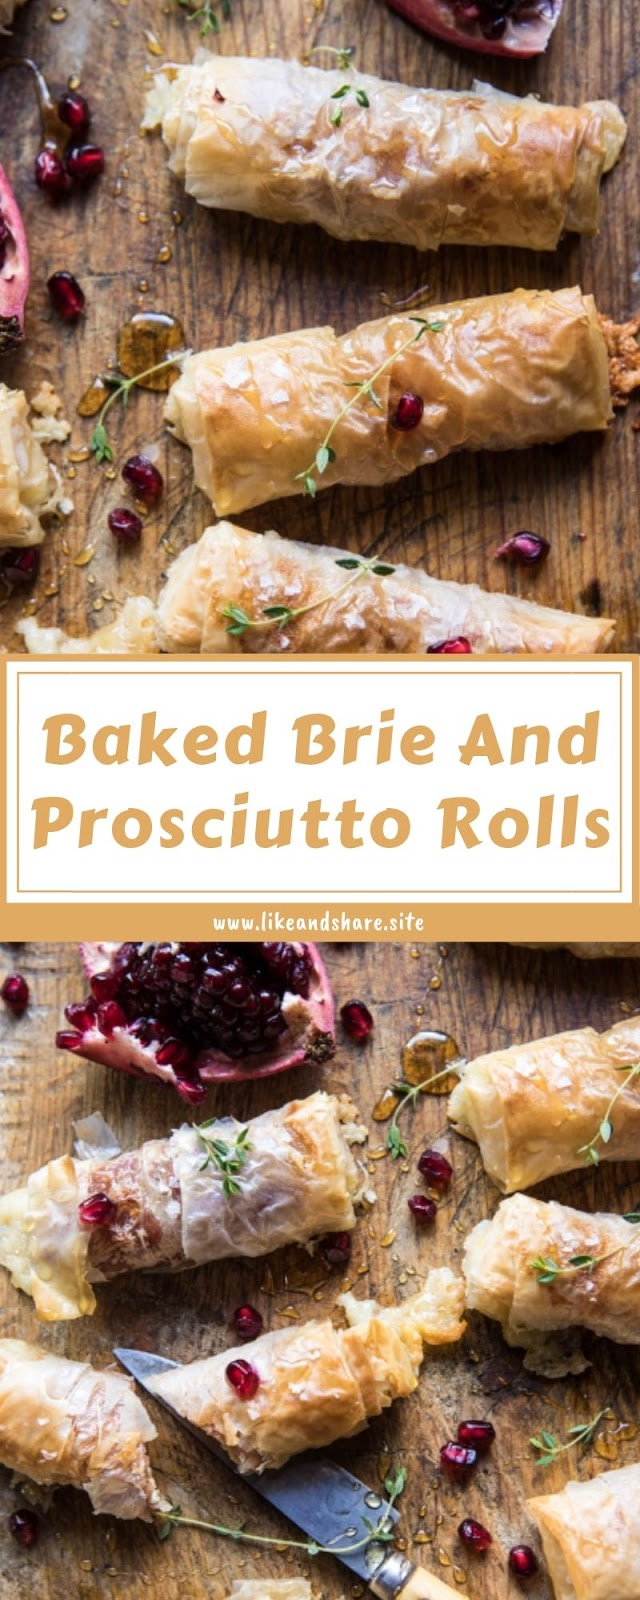 Baked Brie And Prosciutto Rolls